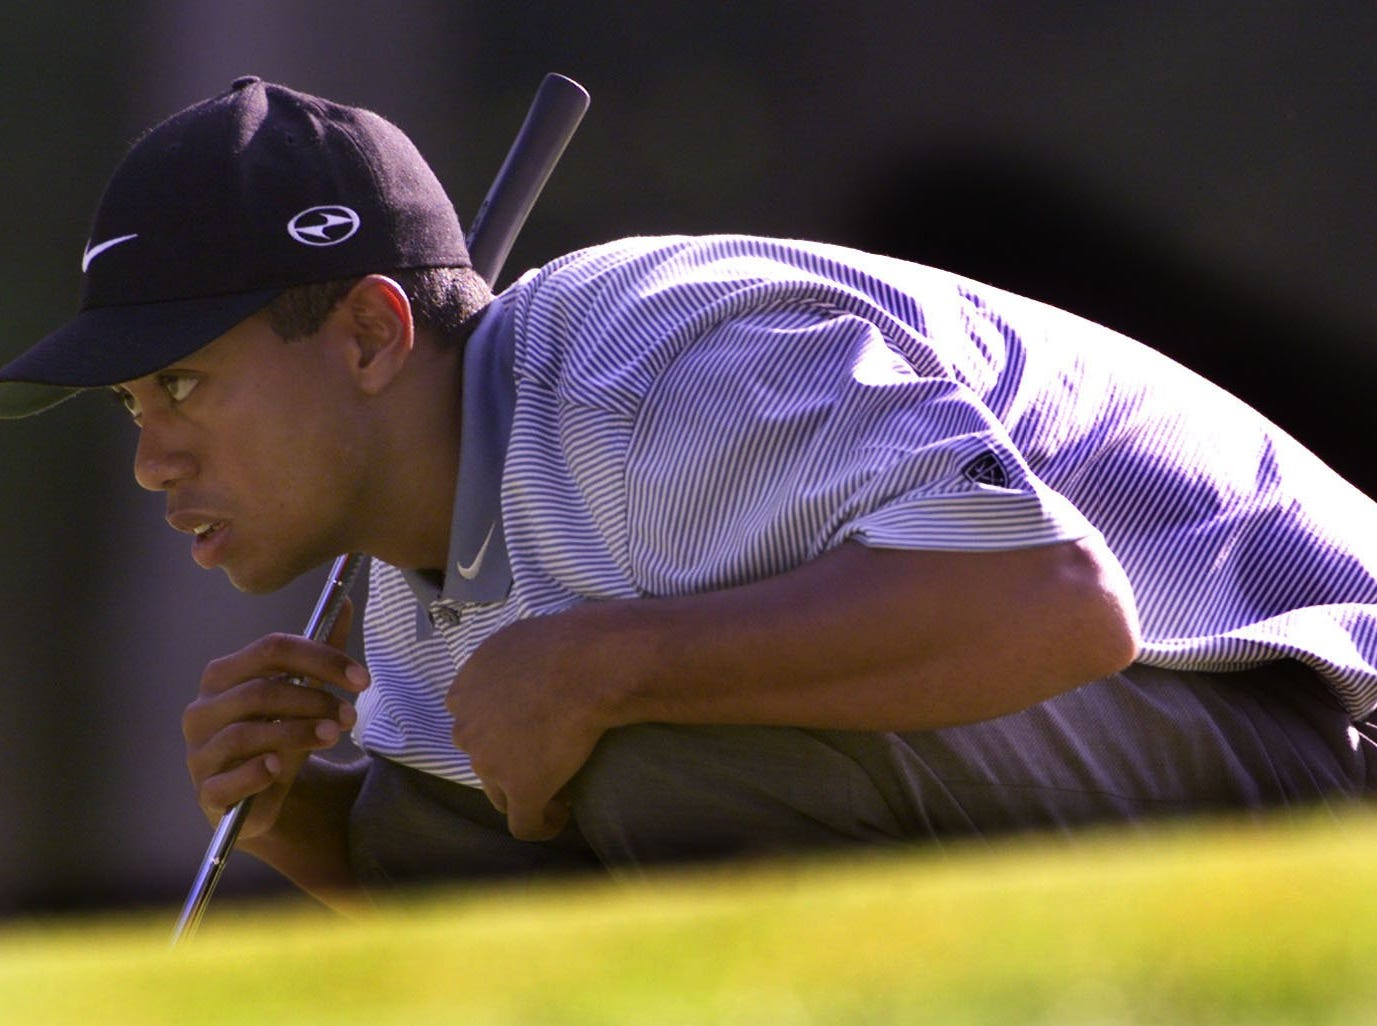 Tiger Woods concentrates on a birdie putt on the hole 13 in the second round of the PGA at Valhalla.  8/18/00